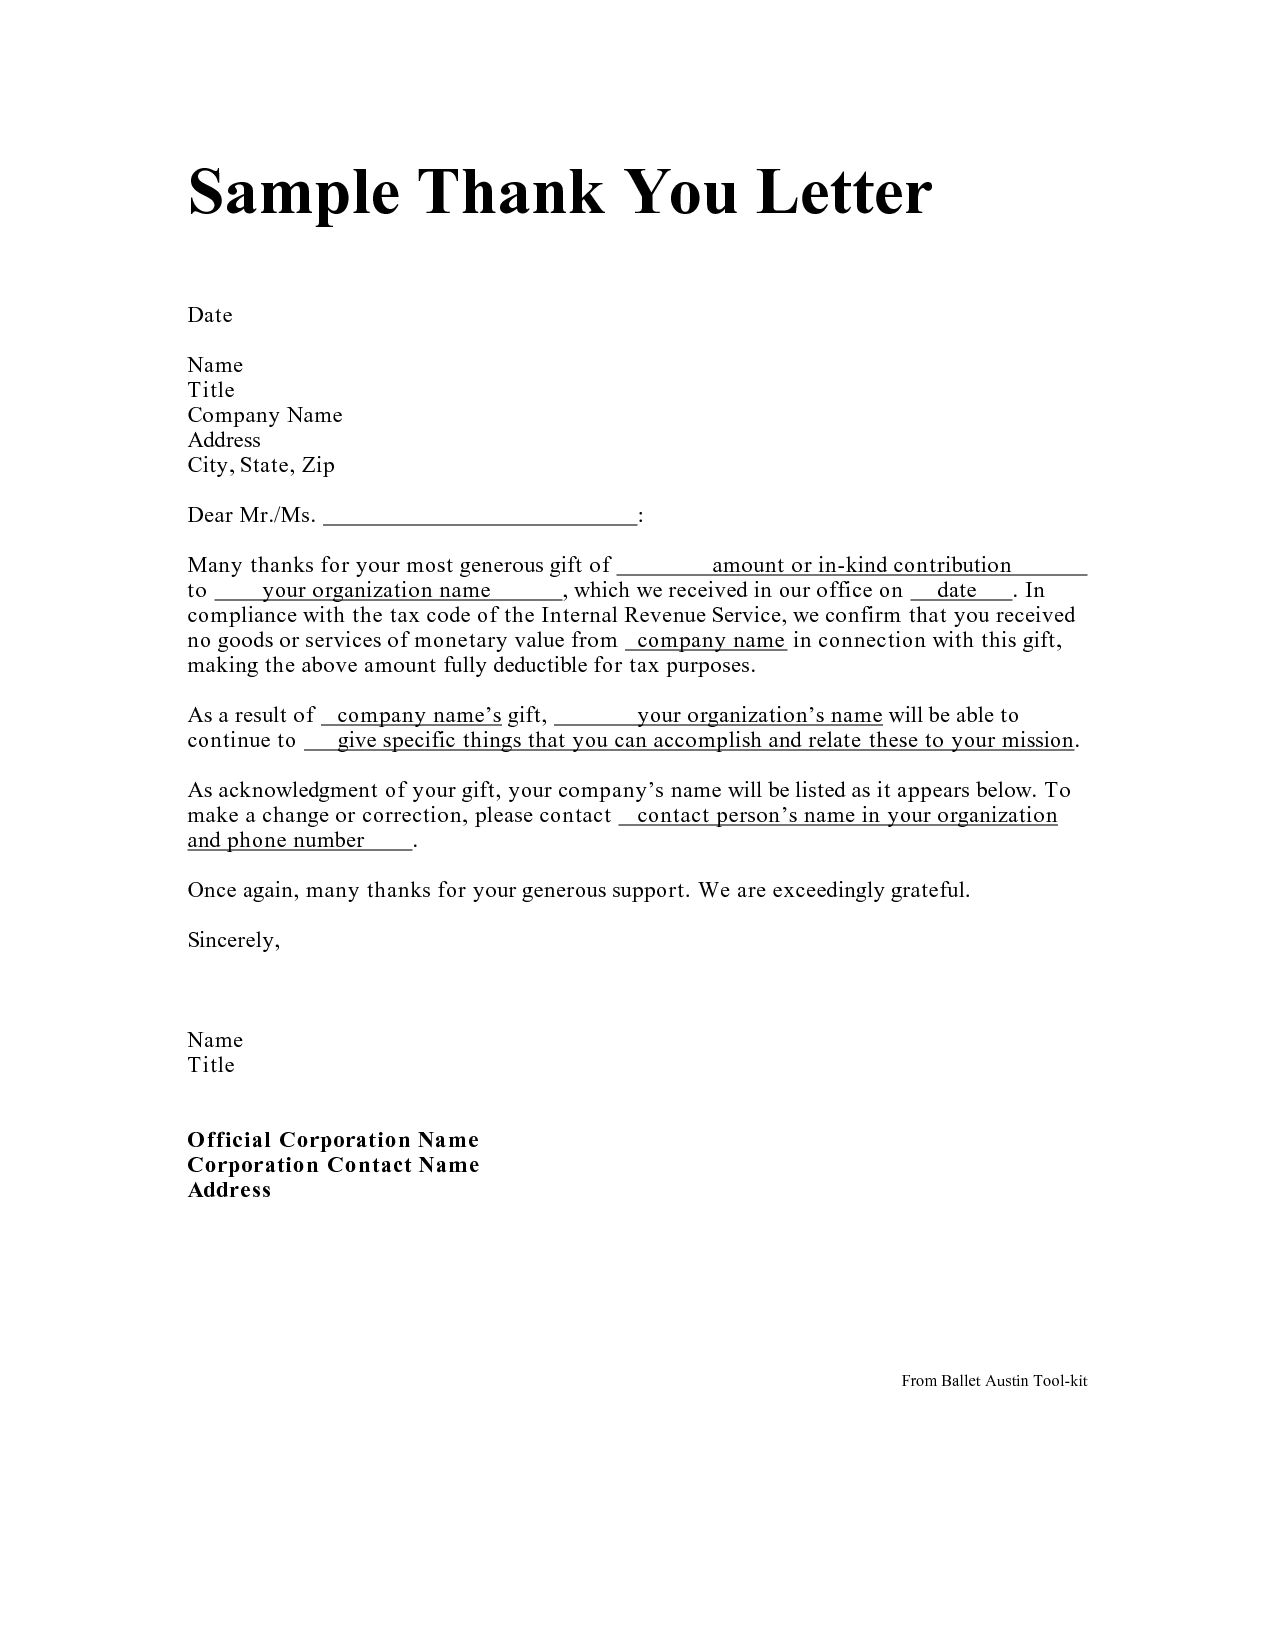 appreciation letter templates Erkalnathandedecker